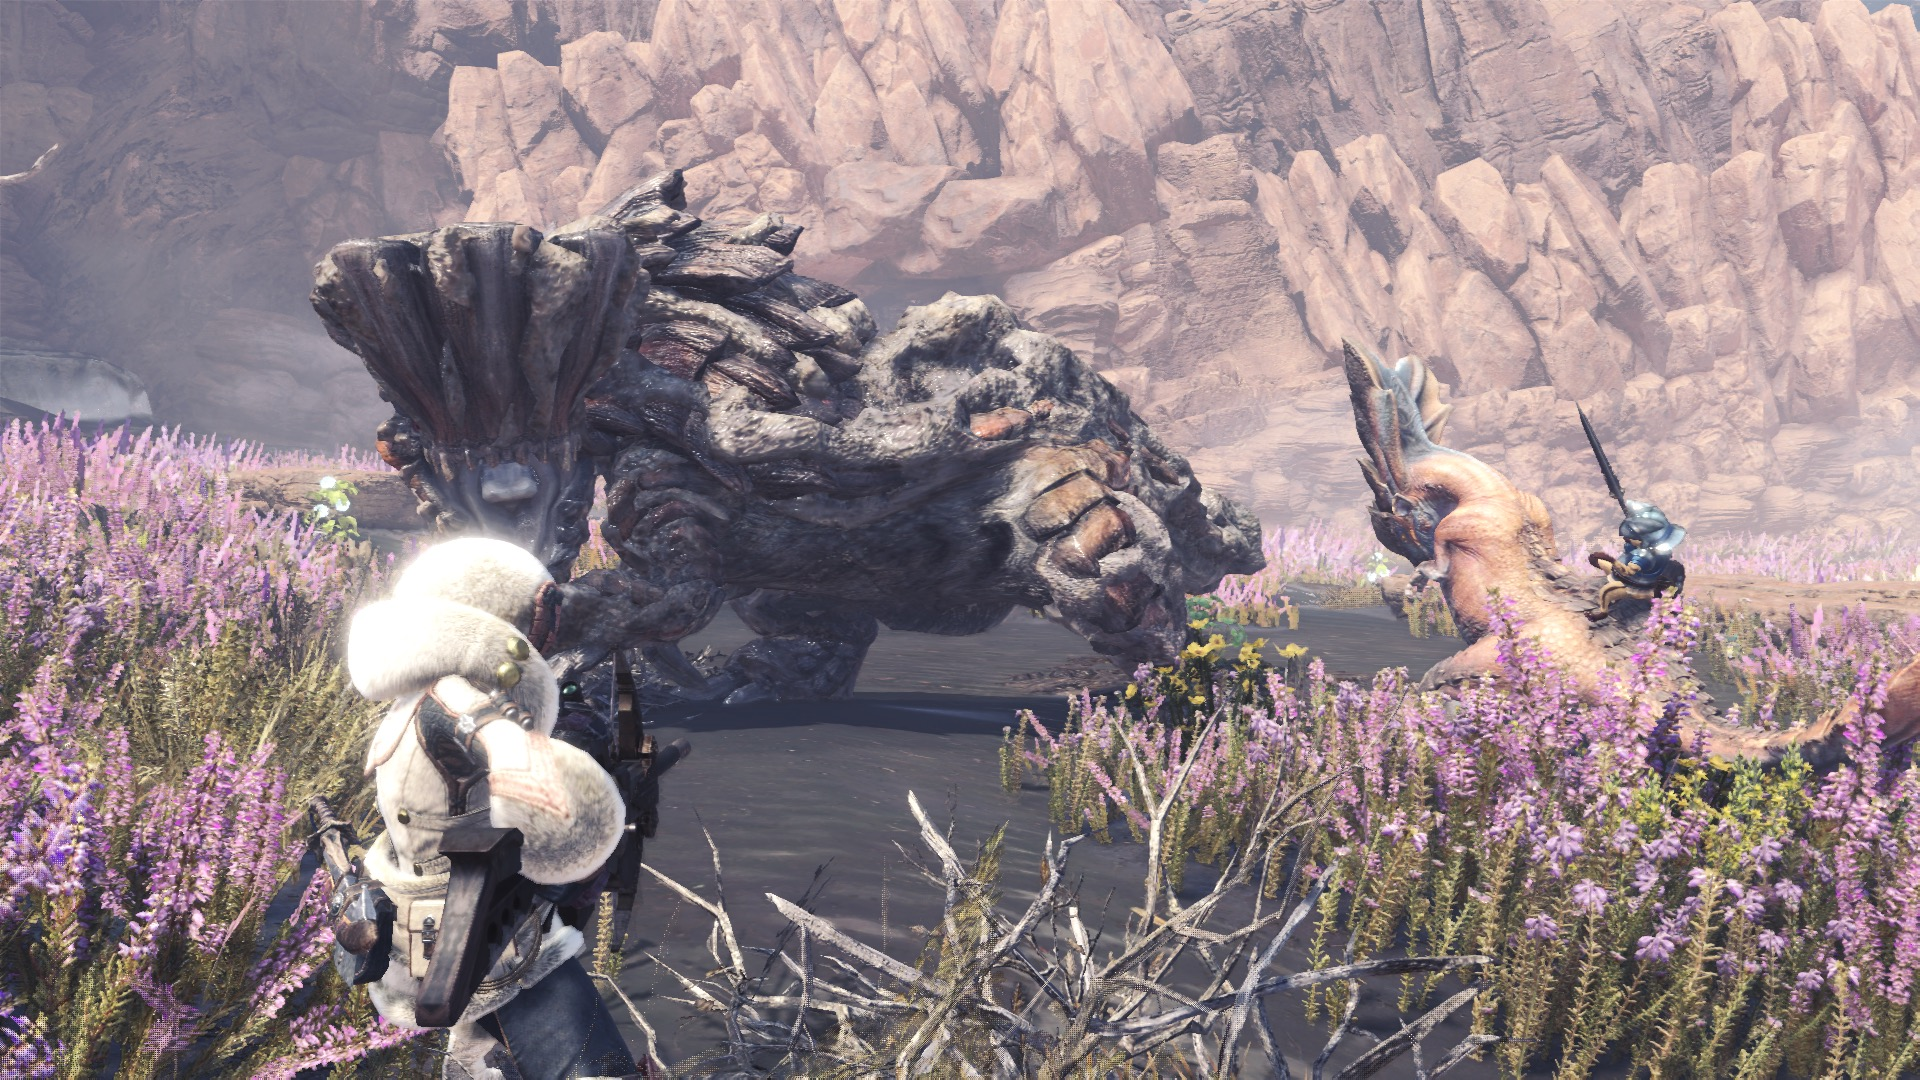 Monster Hunter World guide: How to beat the Barroth - Polygon